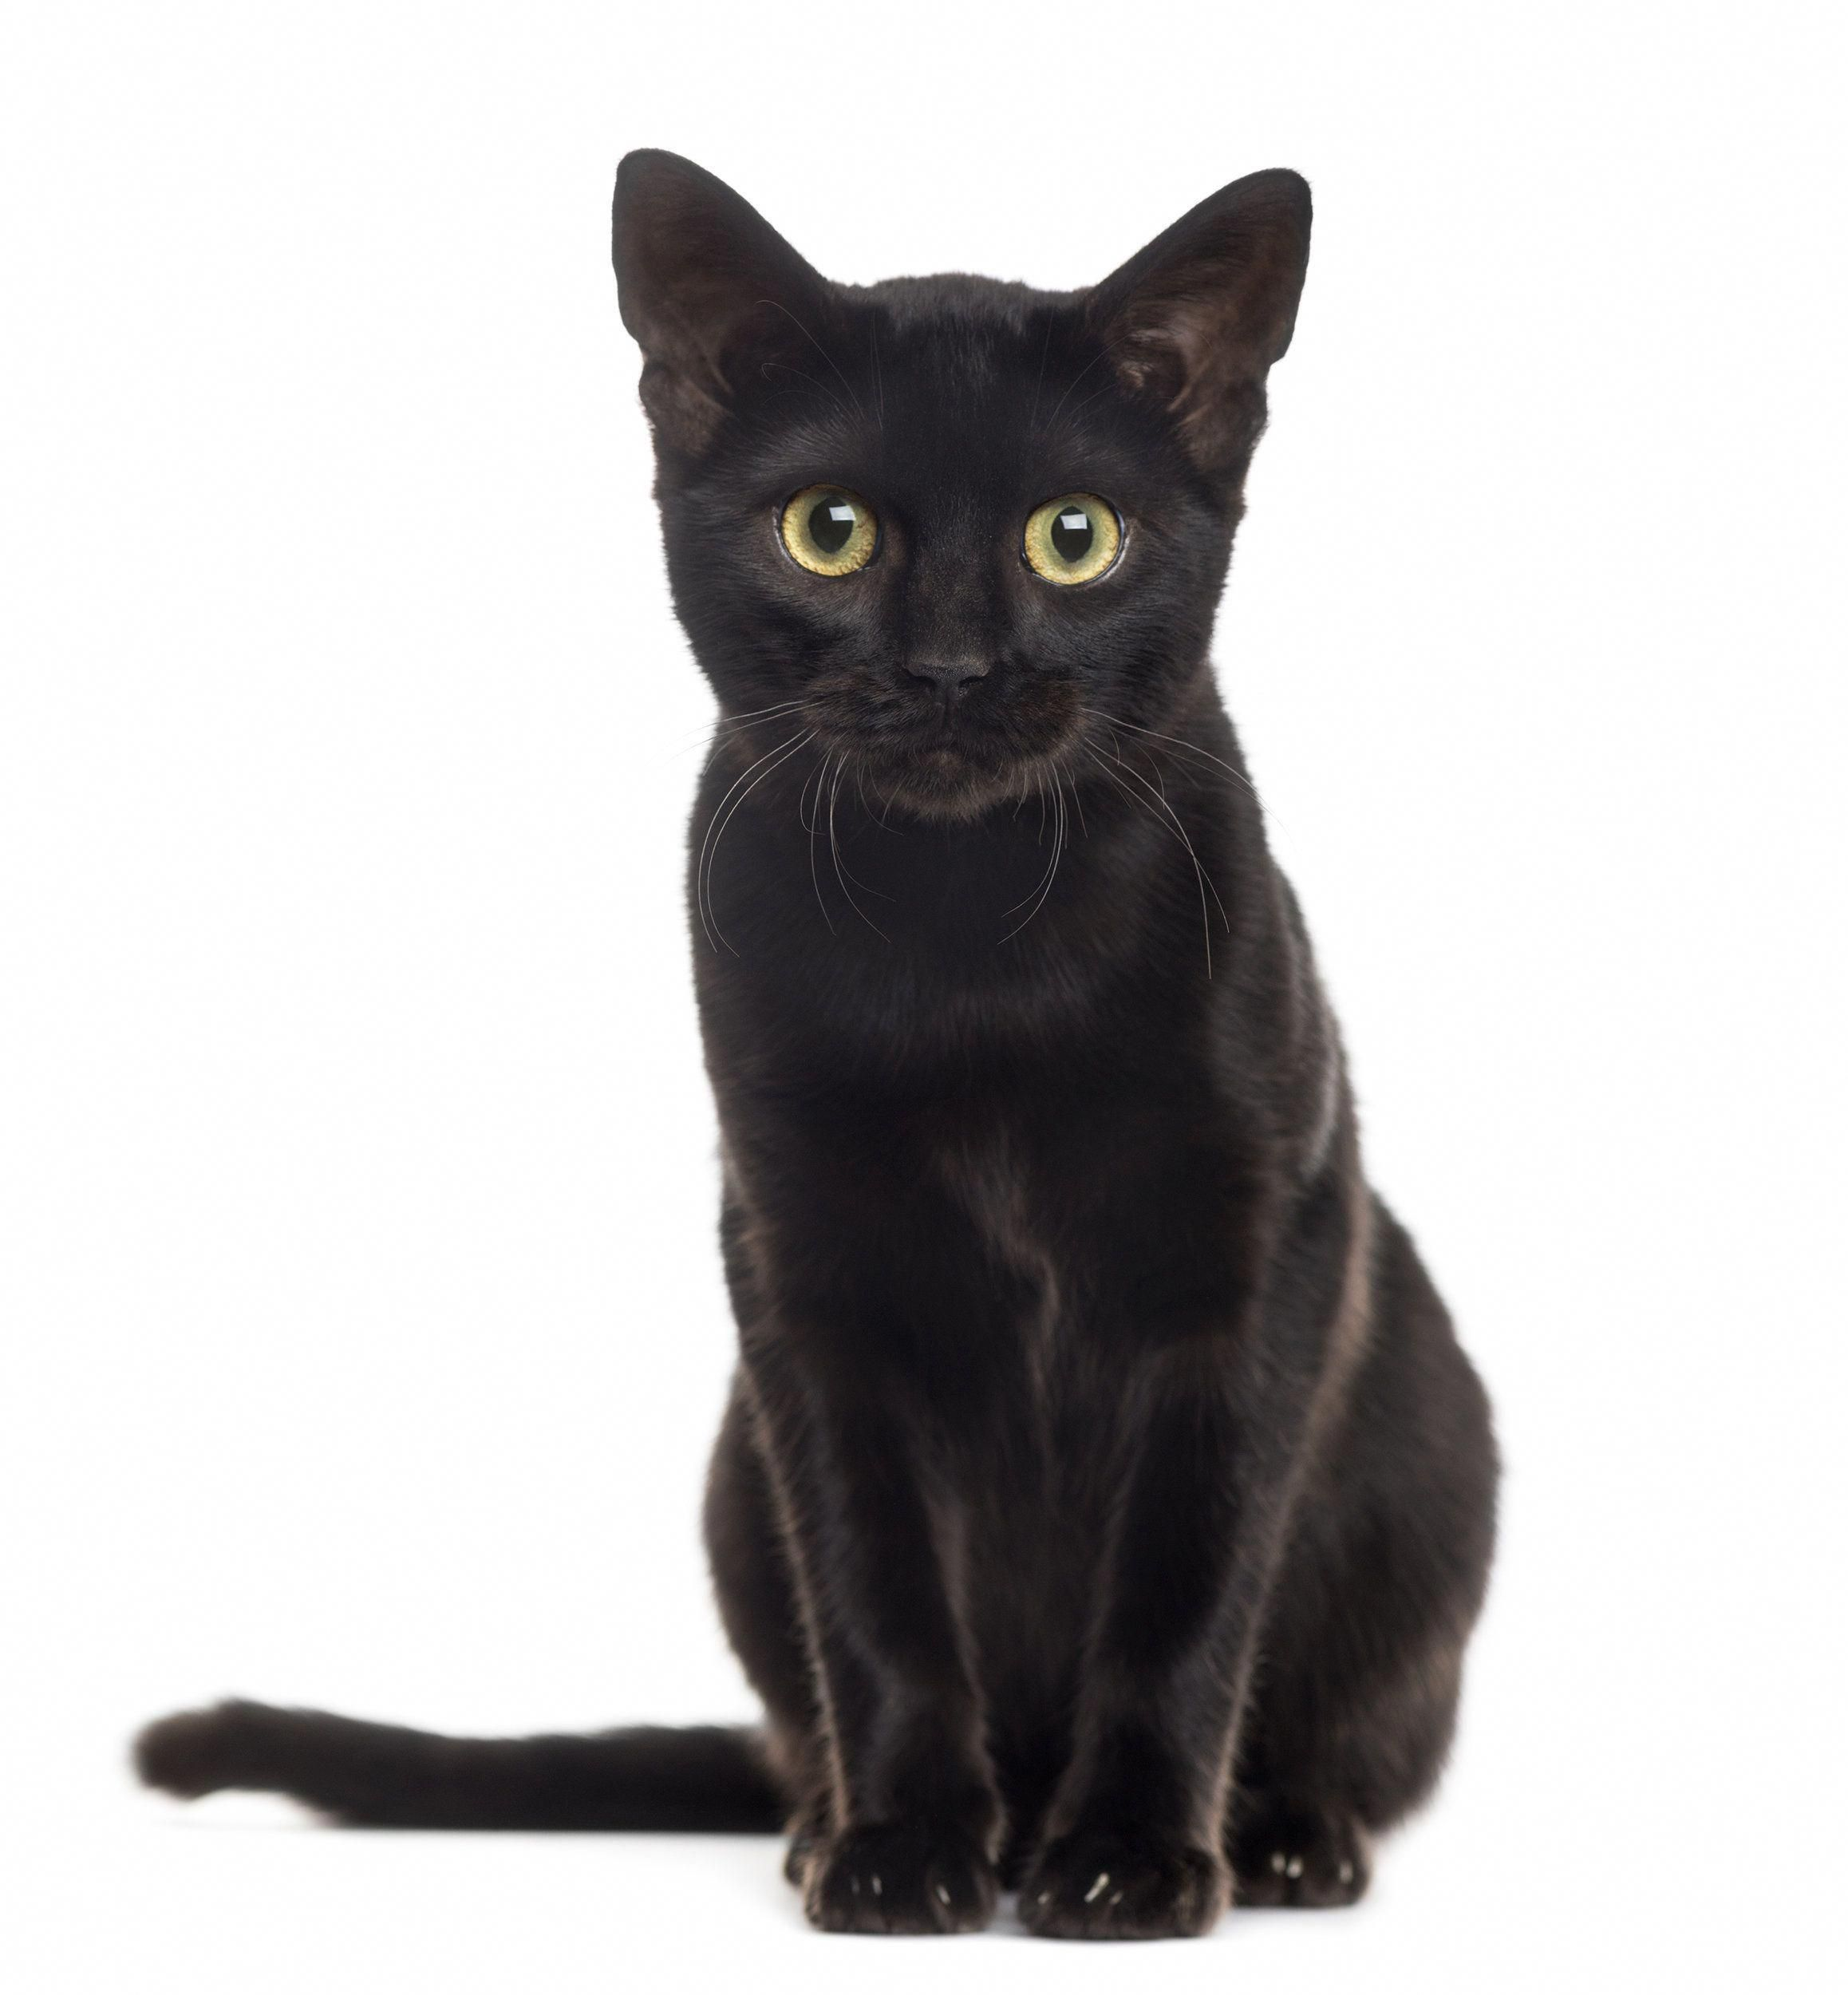 Stop Hating On Black Cats It S National Black Cat Day Huffpost Blackcats Black Cat Day National Black Cat Day Black Cat